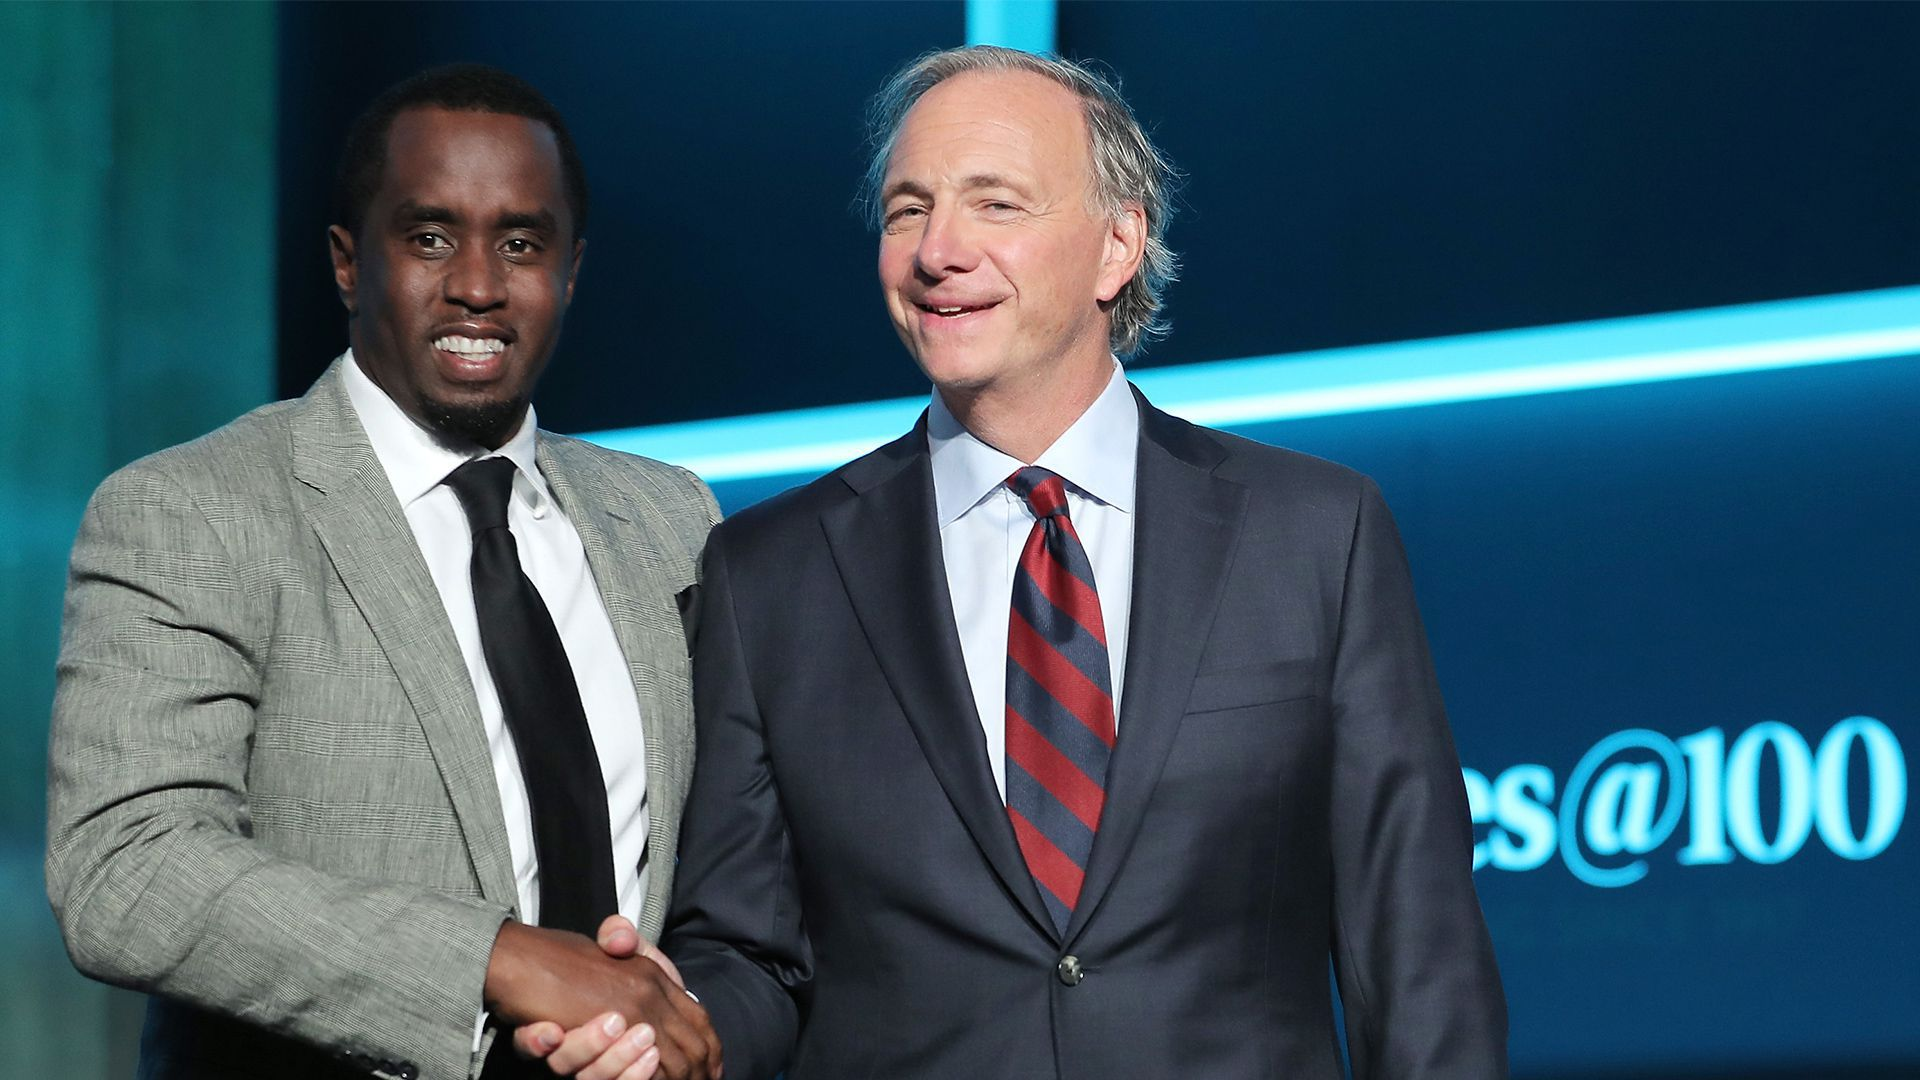 In this image, Dalio and Diddy stand together and shake hands while wearing suits